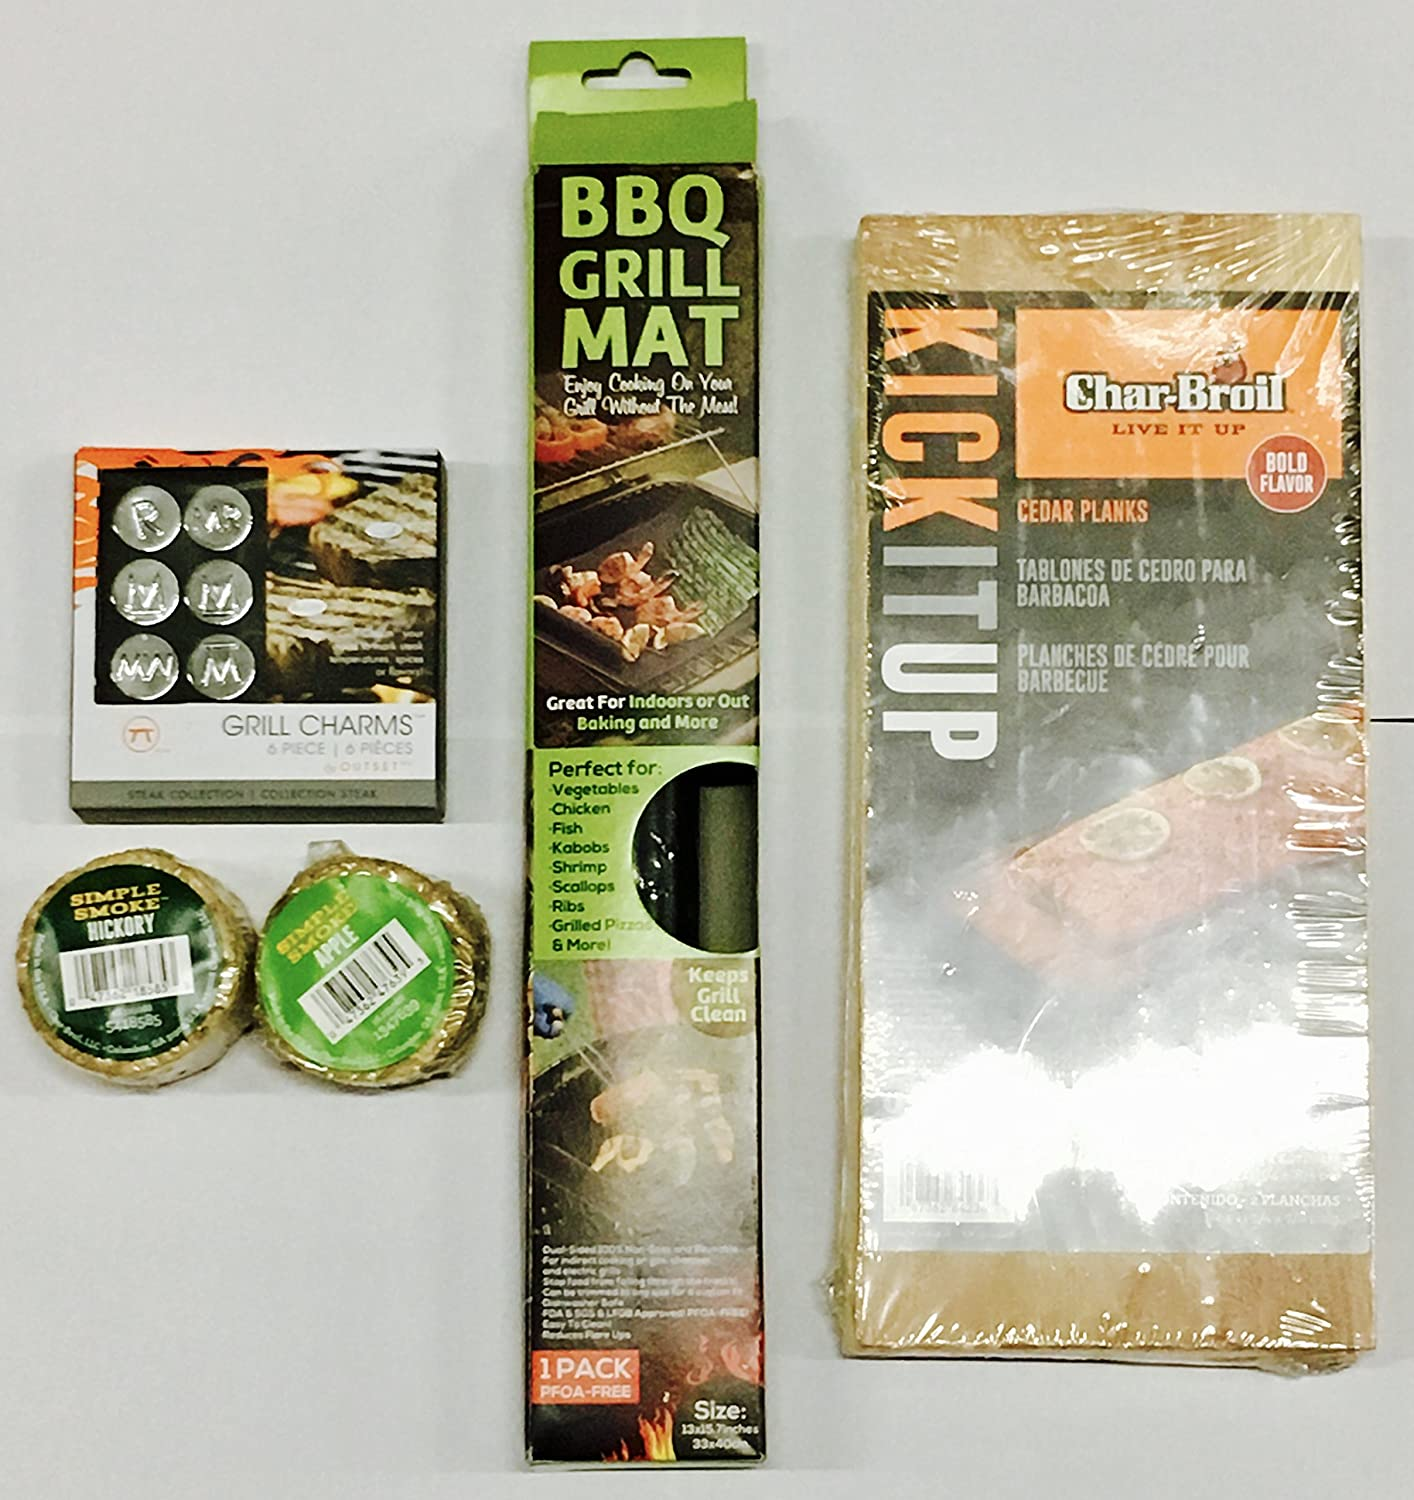 Amazon.com : Camouflage BBQ Apron with Toolset, Accessories - BBQ Grill Mat, Charbroil Planks, Grill Charms, Wood Chip Pucks, Bundle : Garden & Outdoor